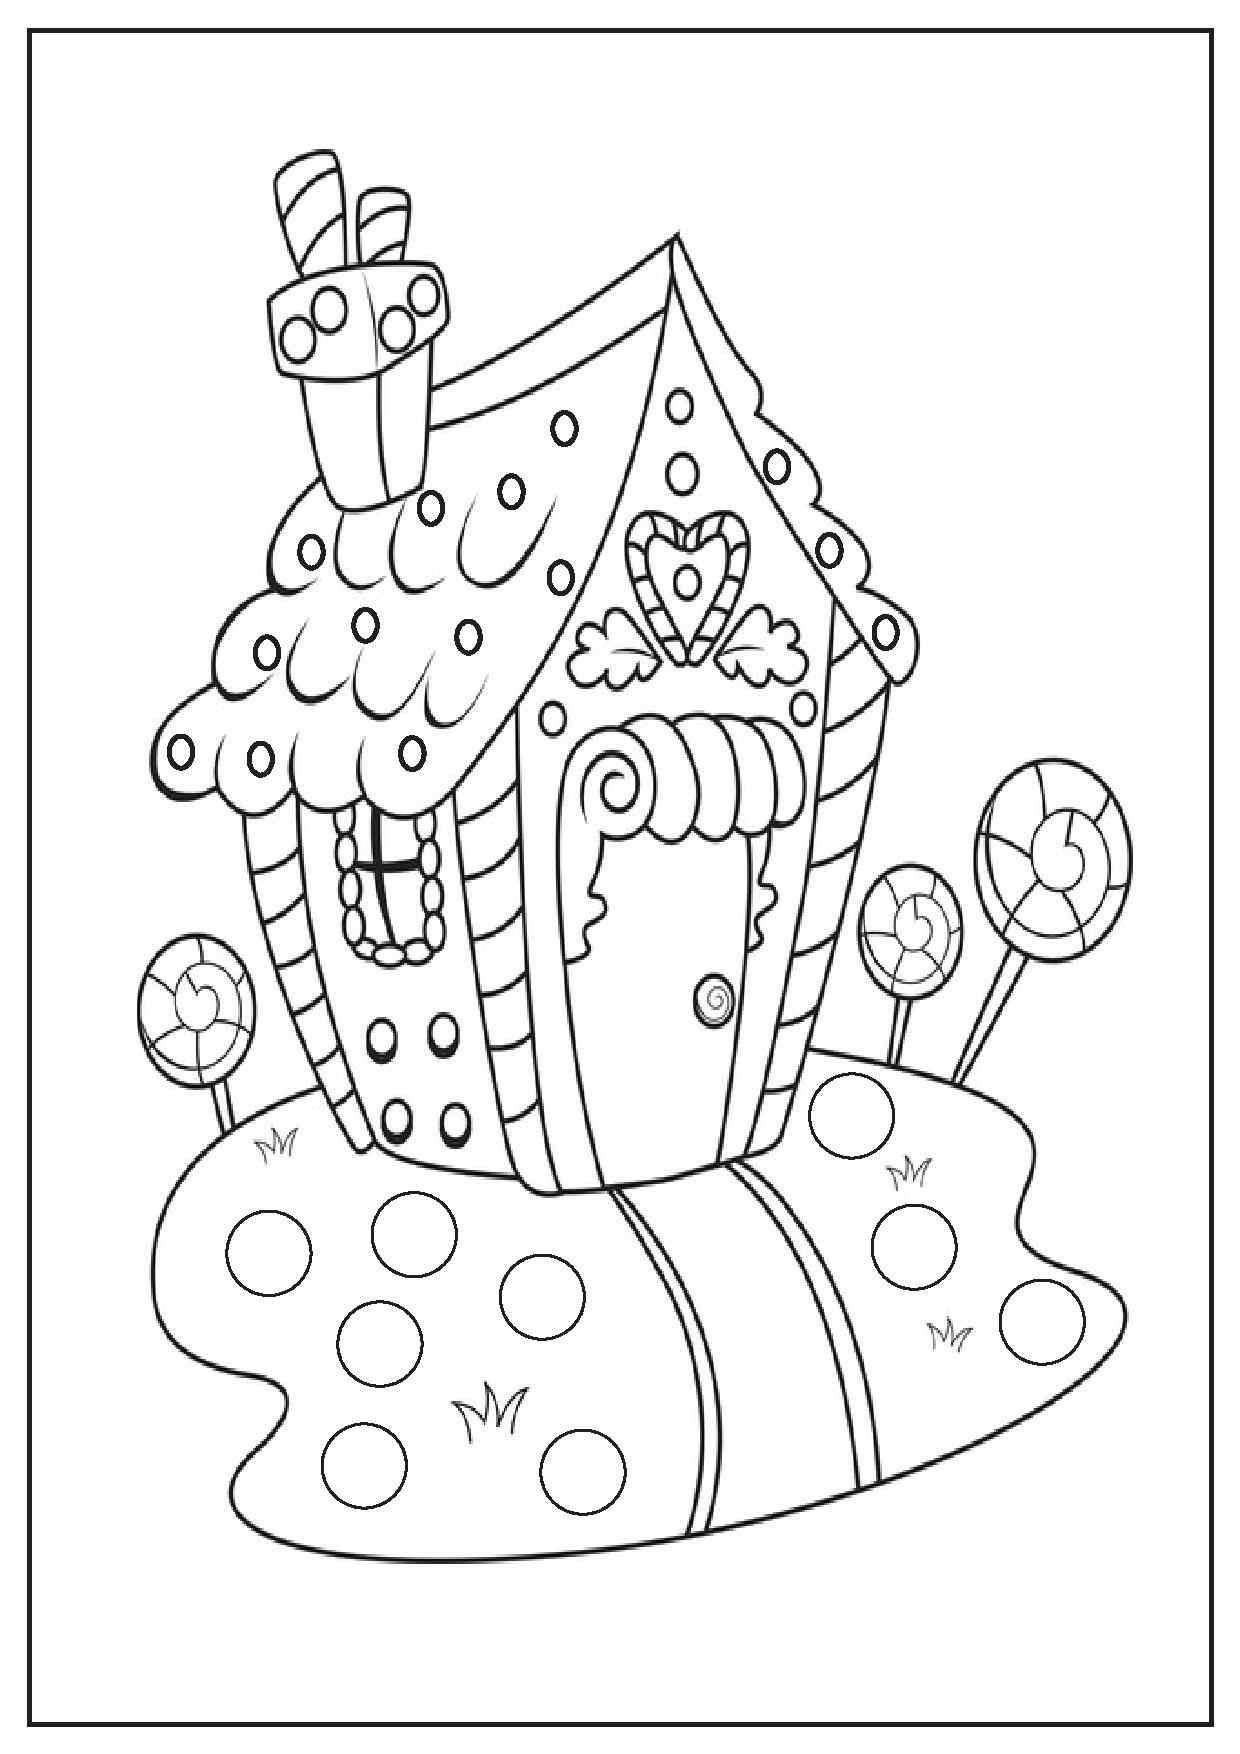 Christmas coloring in pages printable - Christmas Worksheets Christmas Coloring Pages Printables